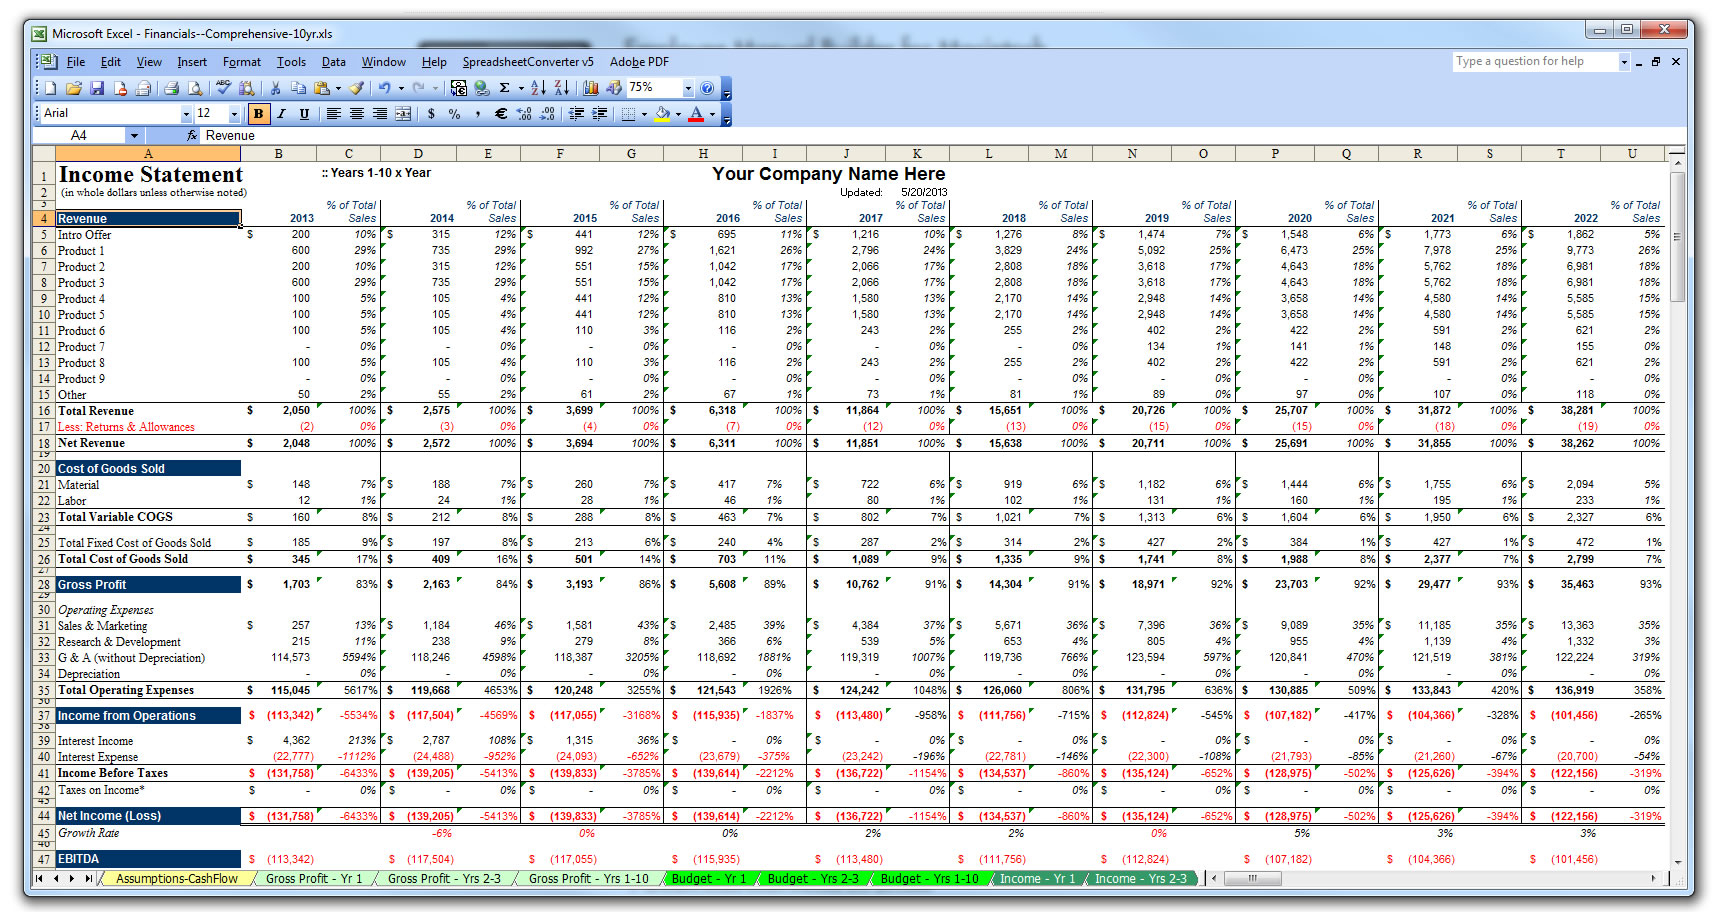 Business Plan Financial Template Excel Download - Resourcesaver With Business Plan Financials Template Excel Free